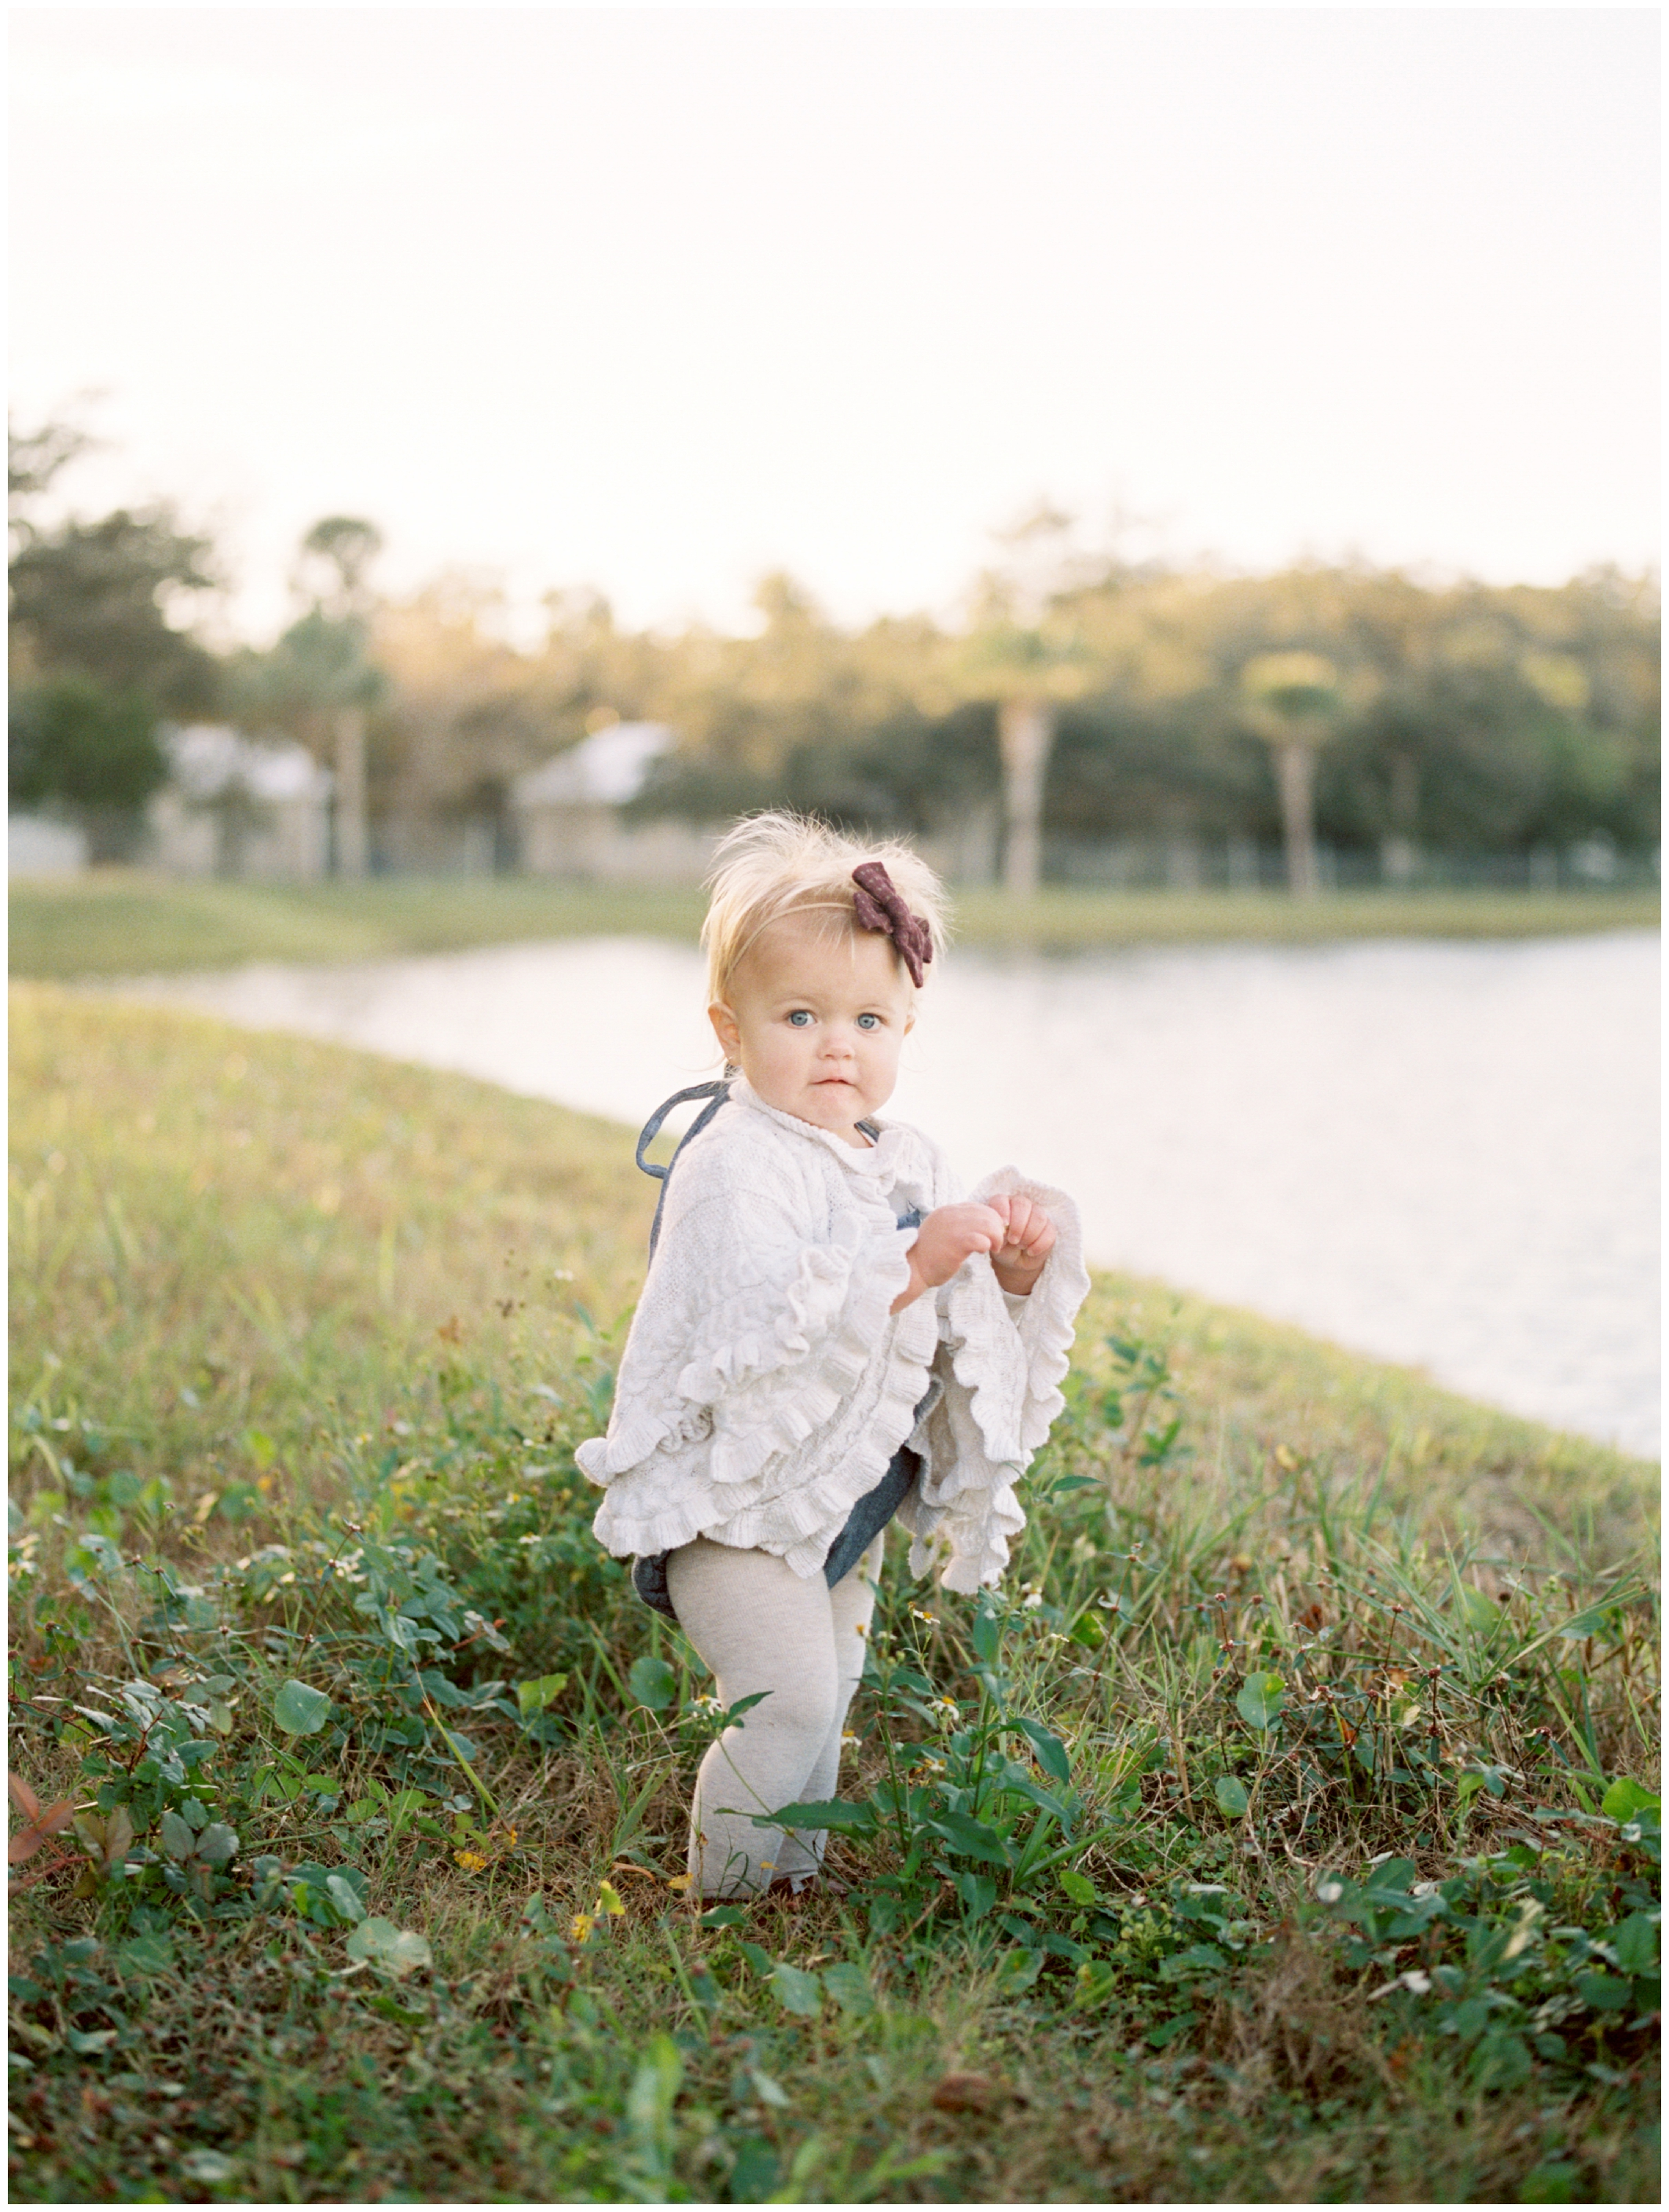 Lisa Silva Photography- Ponte Vedra Beach, St. Augustine and Jacksonville, Florida Fine Art Film Destination Wedding Photography- Family Lifestyle Session in St. Augustine_0013.jpg